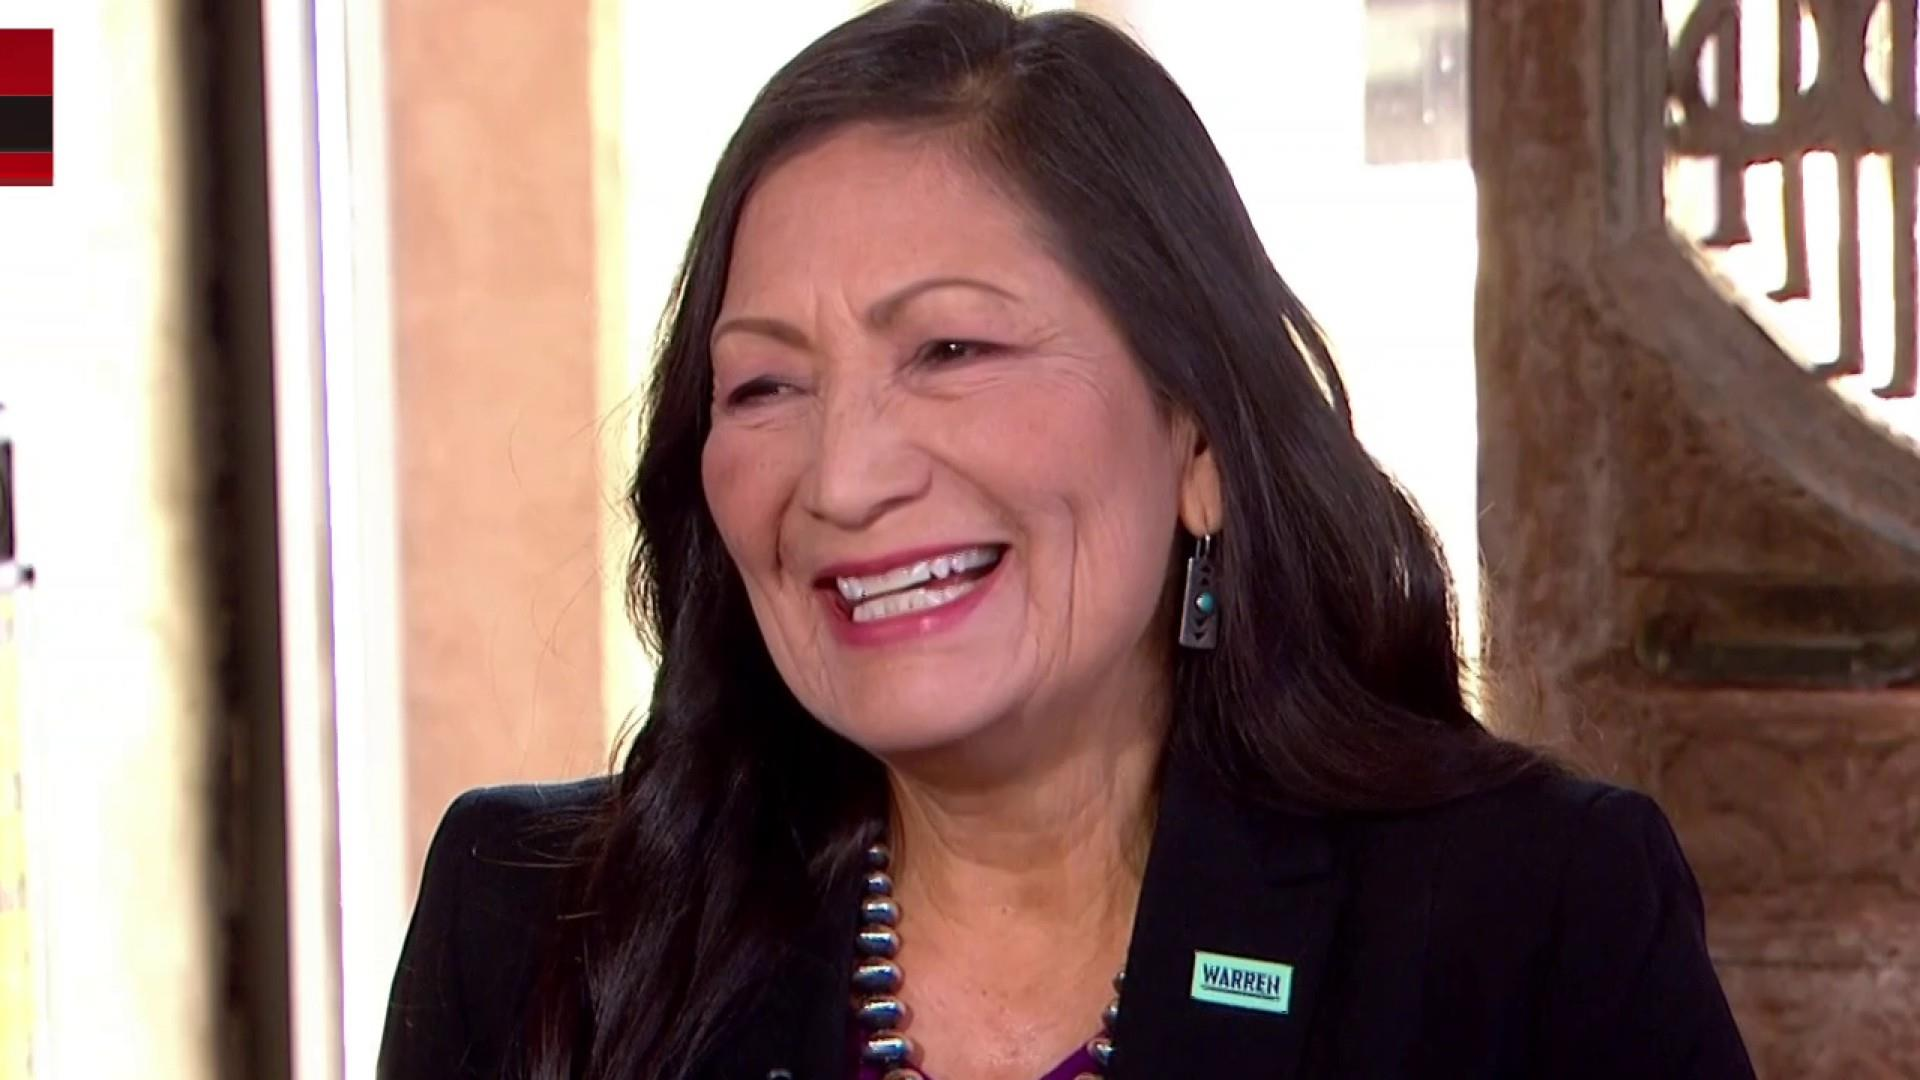 Warren, how she might address Bloomberg discussed by Rep. Haaland